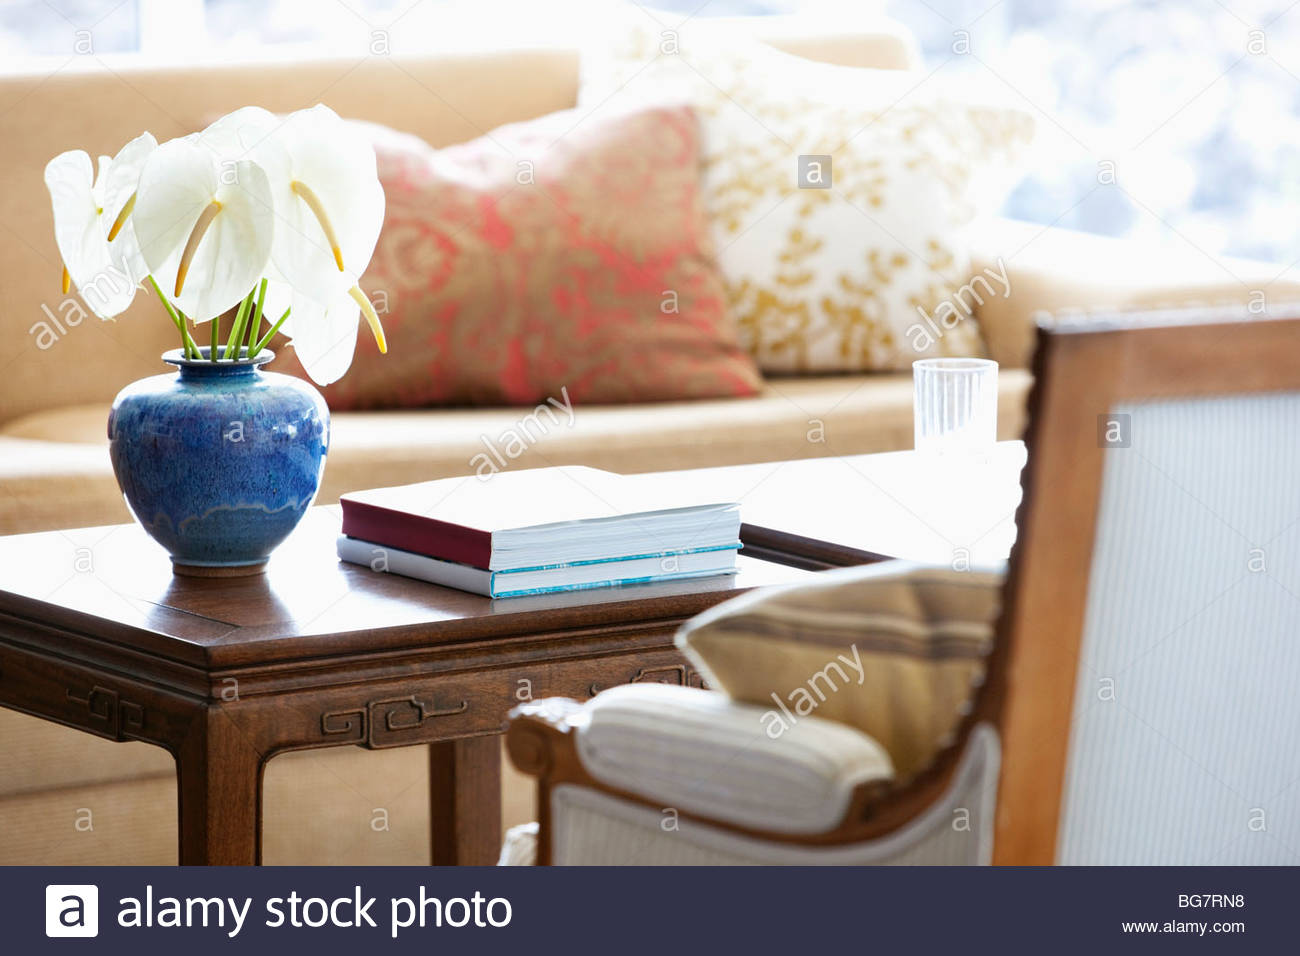 Anthuriums in vase on coffee table - Stock Image